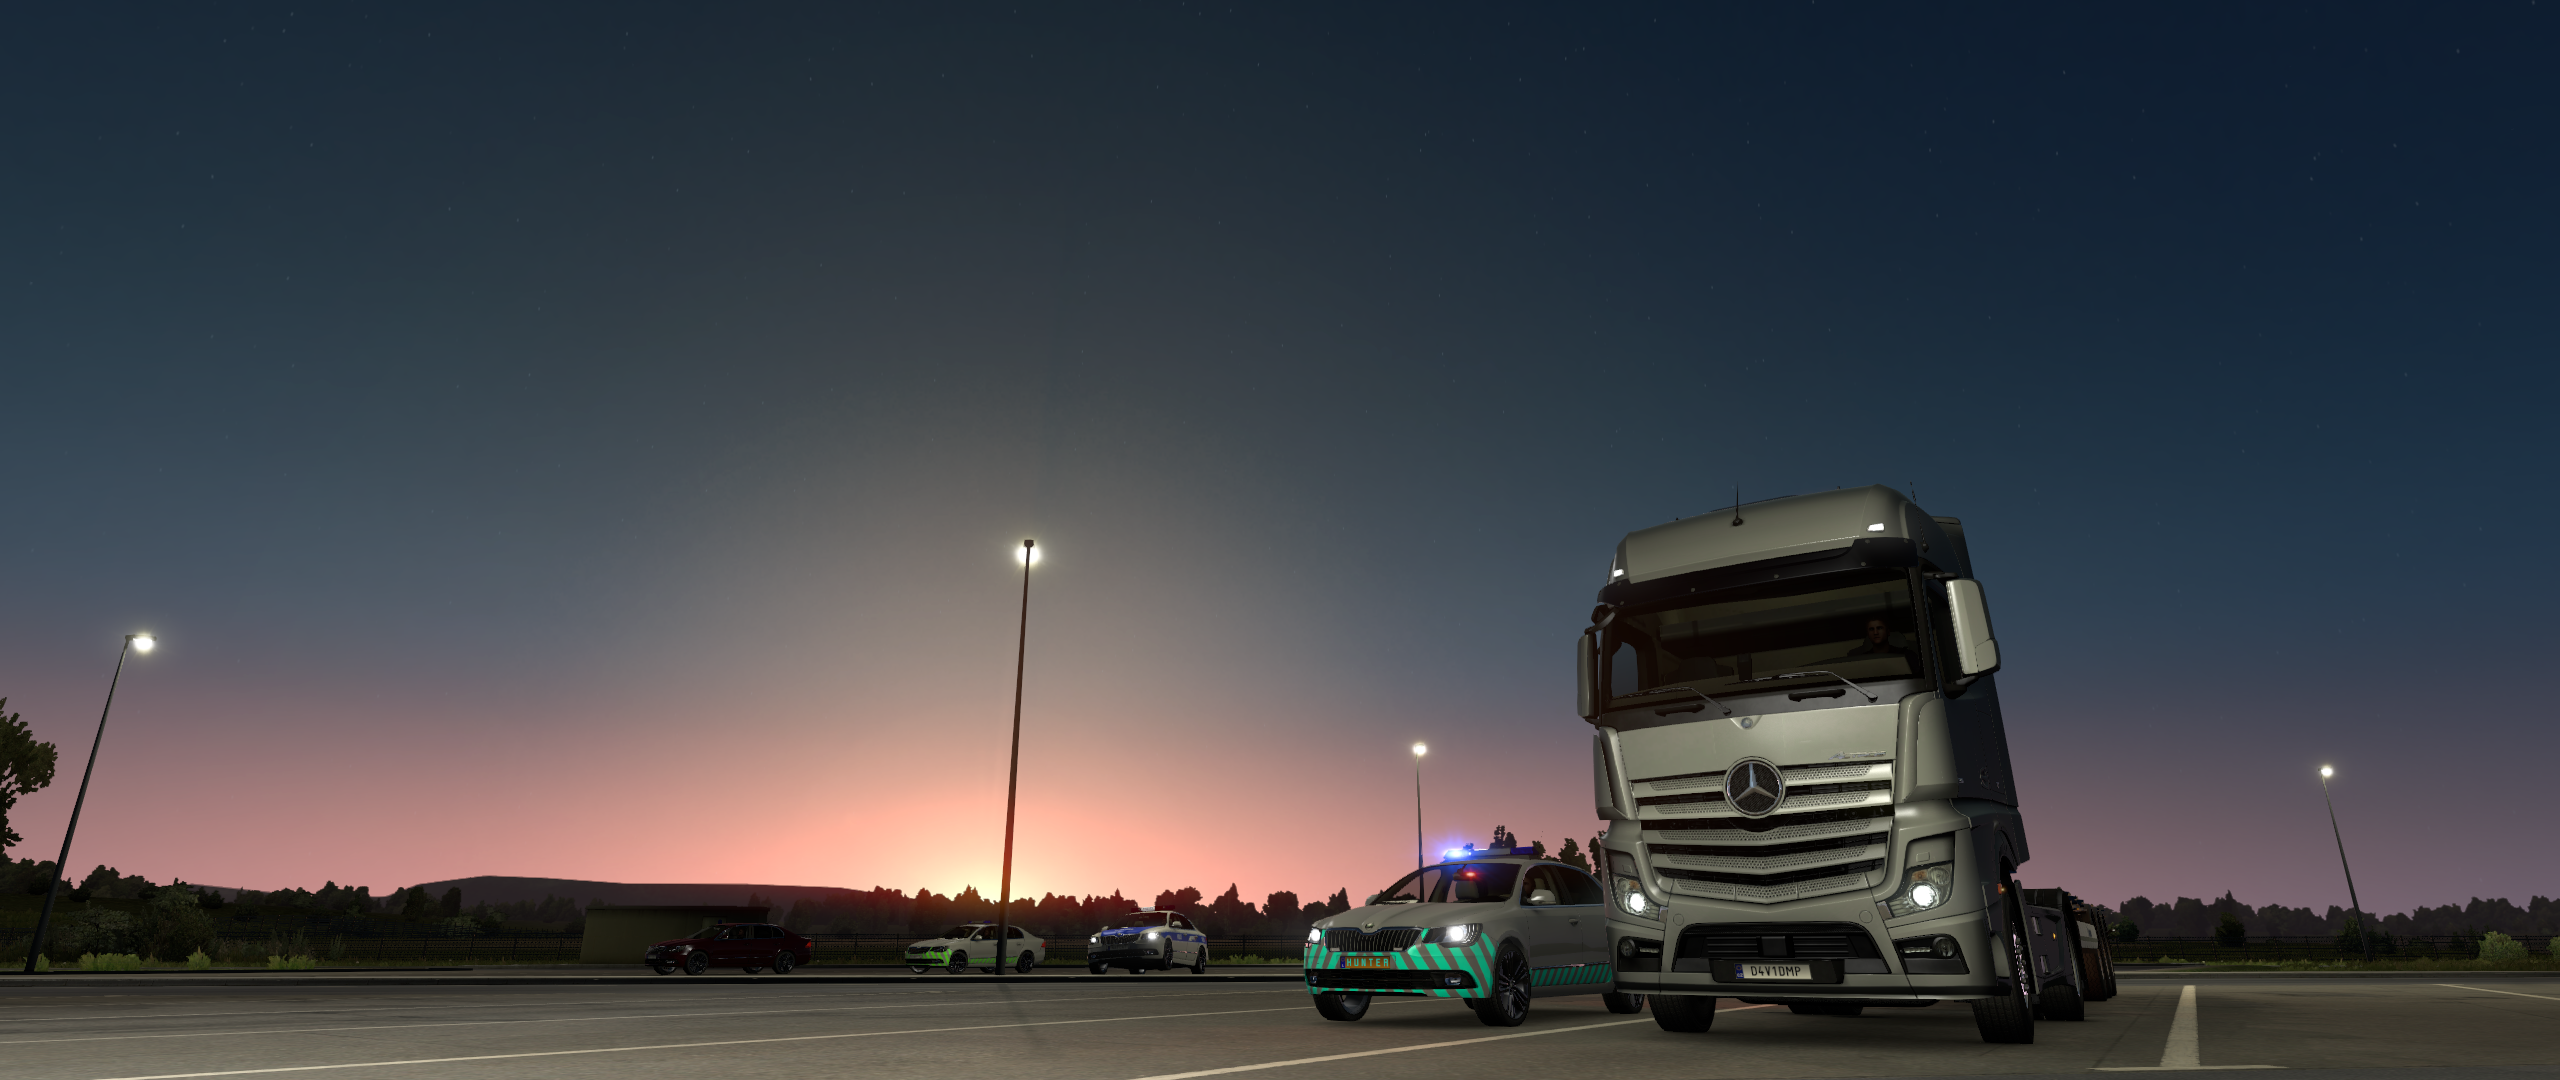 ets2_20190517_153427_00.png